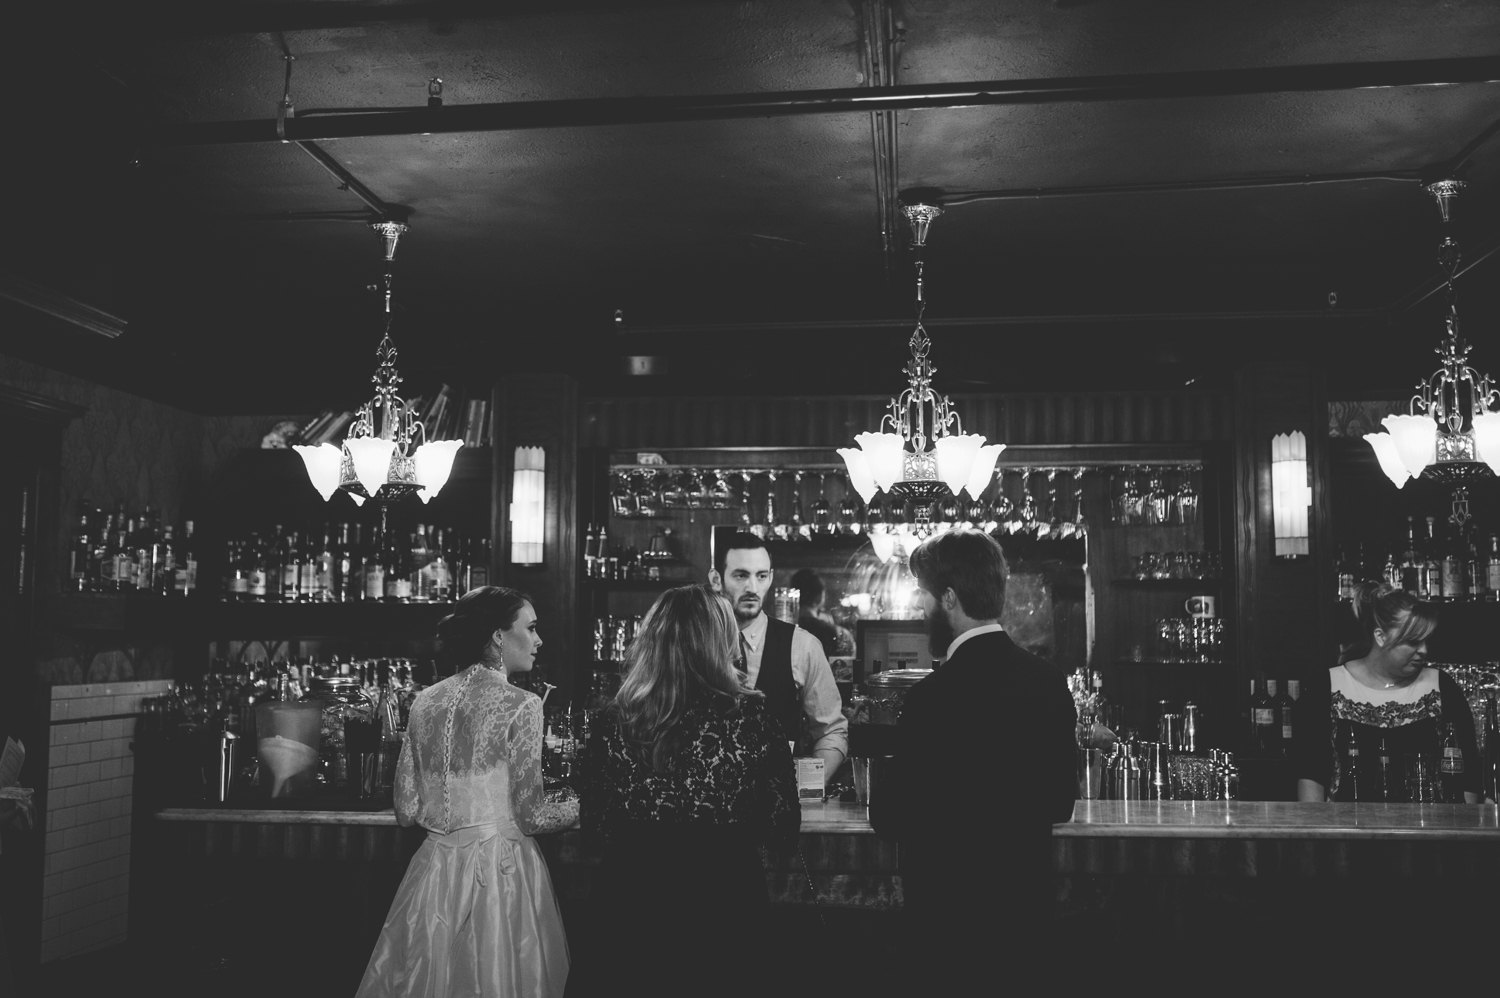 bride_groom_ordering_drinks_at_vintage_bar.jpeg